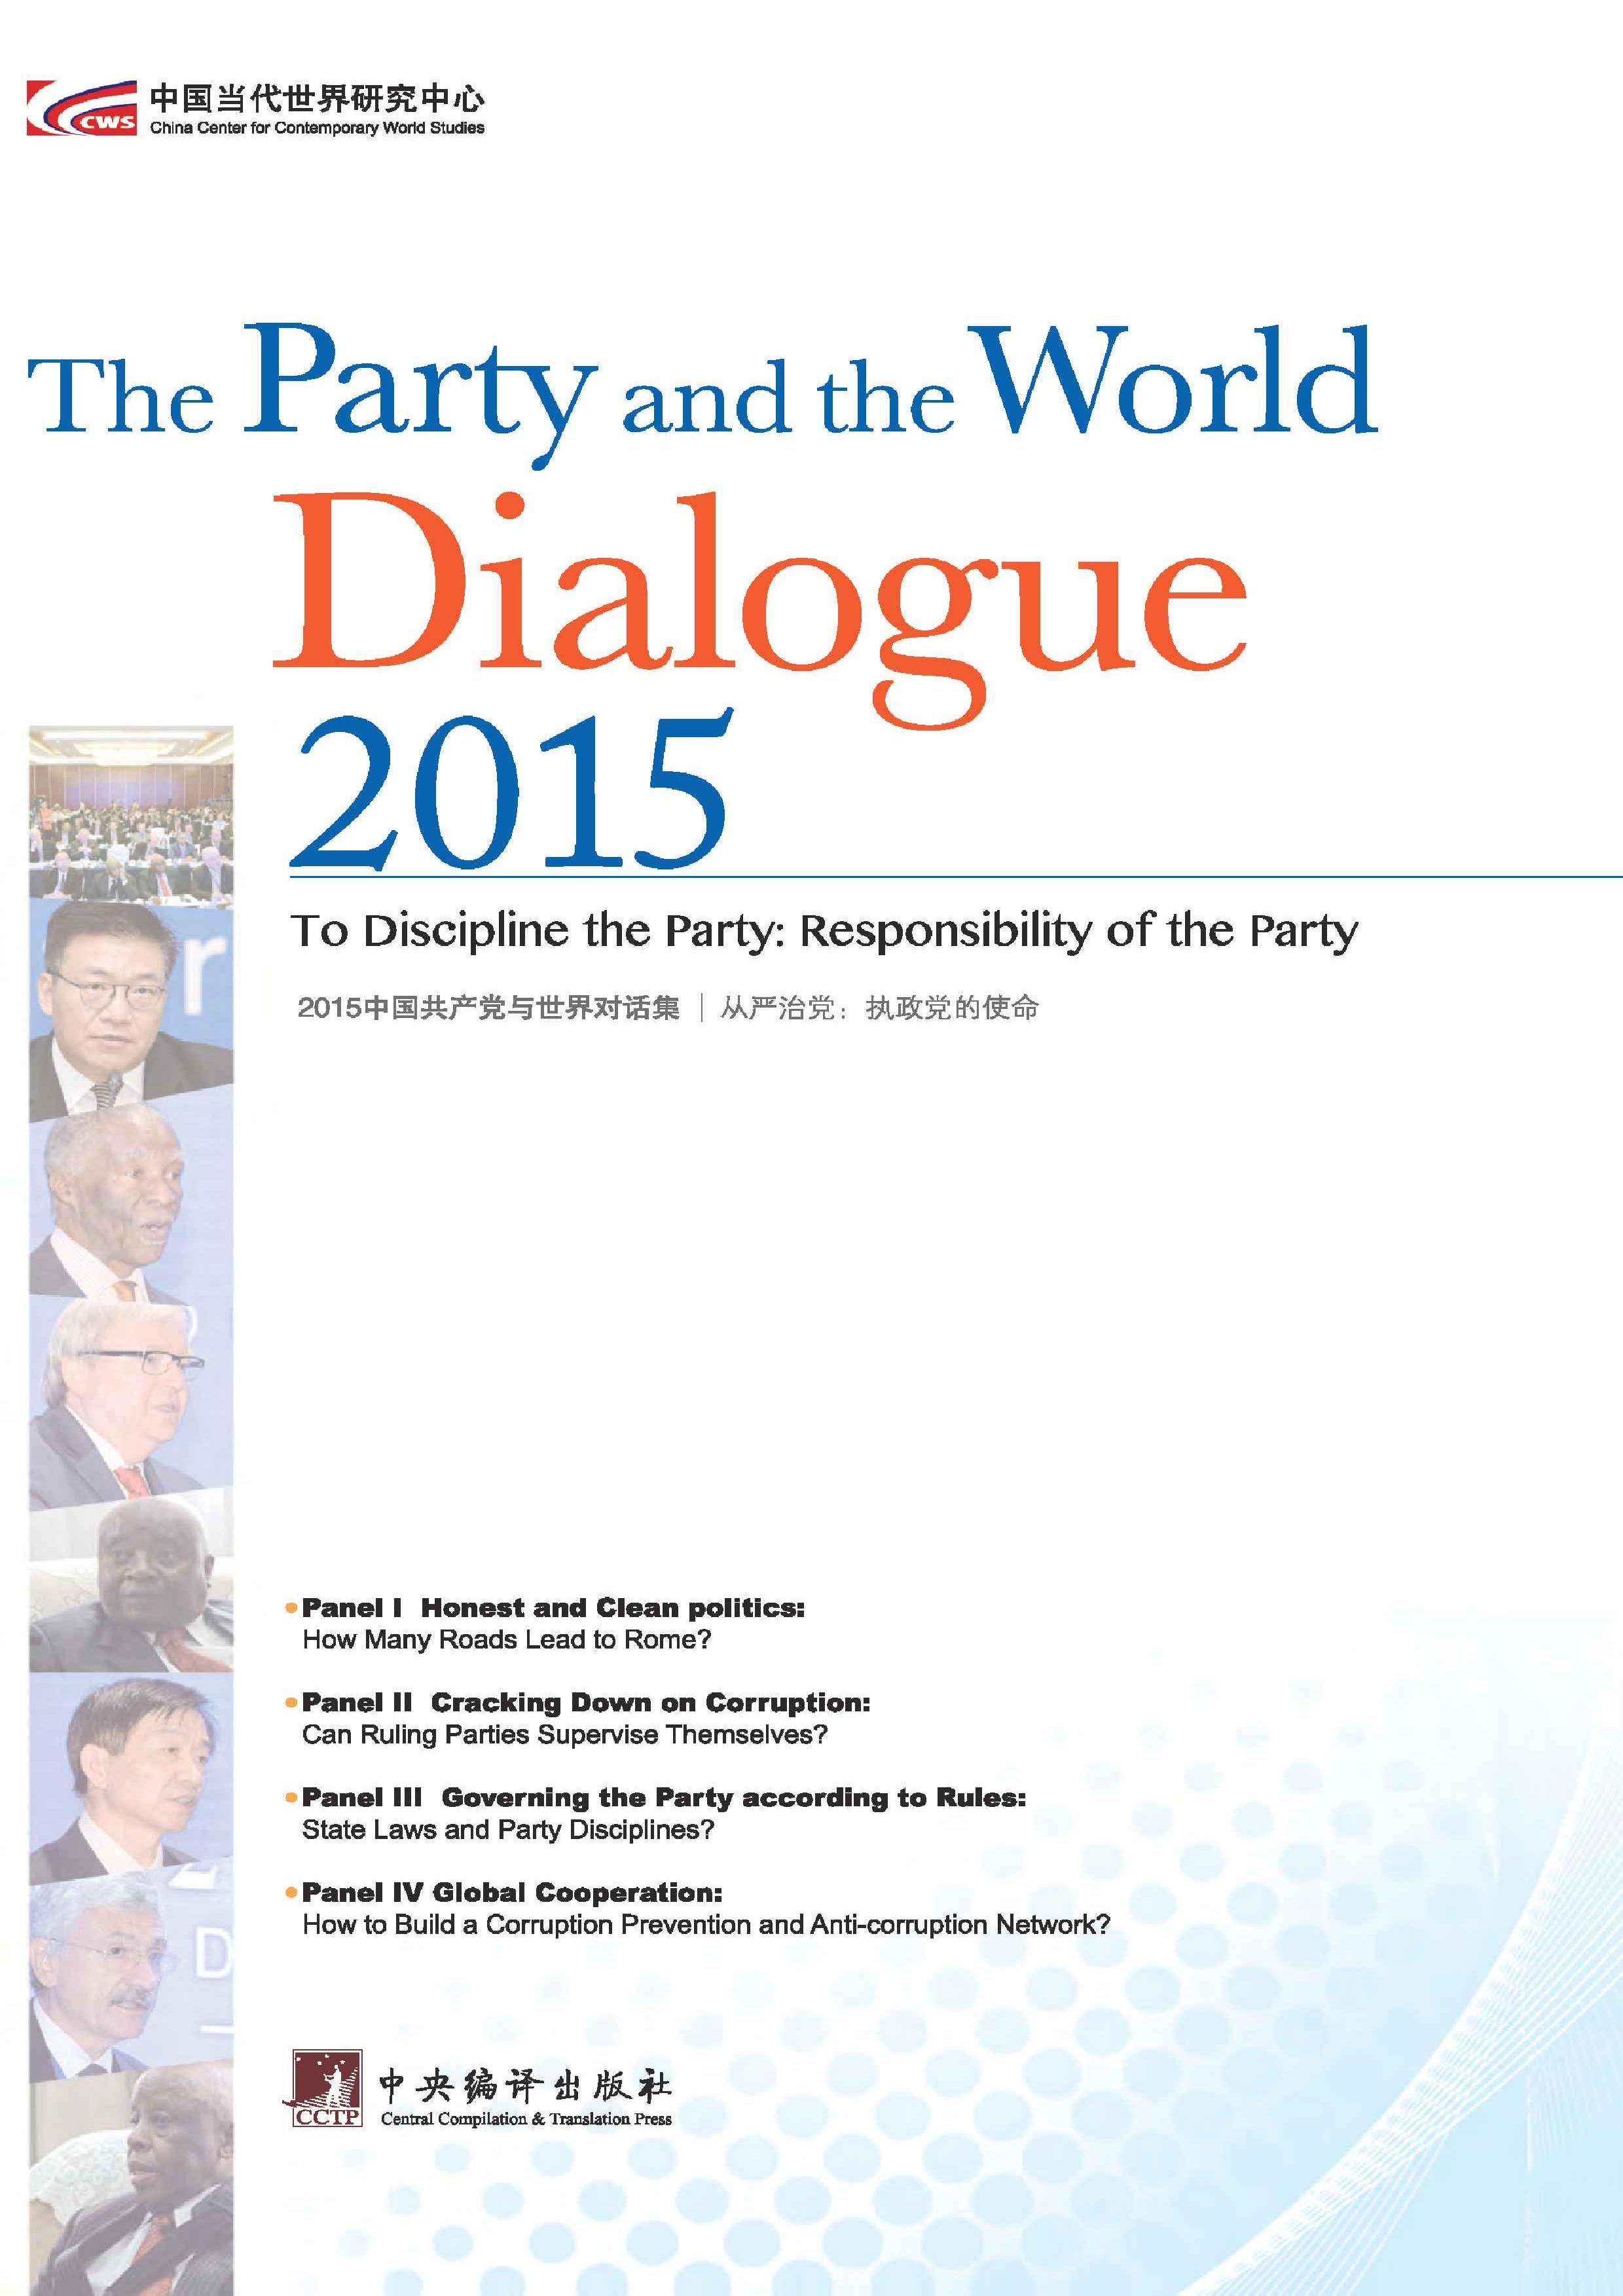 The Party and the World Dialogue 2015